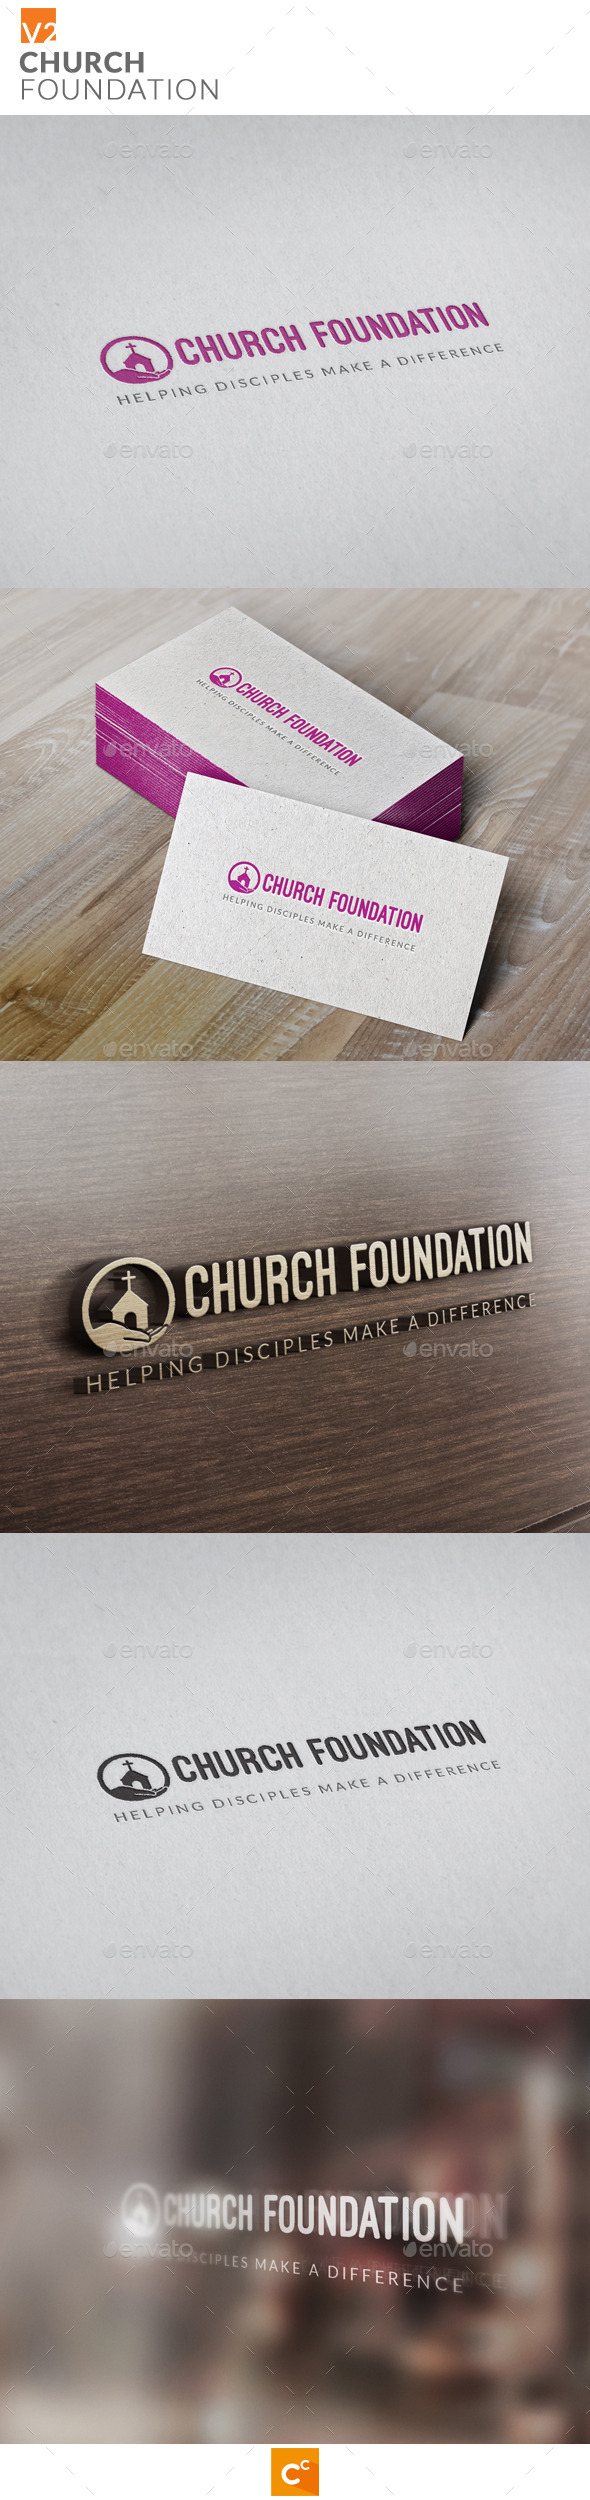 GraphicRiver Church Foundation v2 11129218